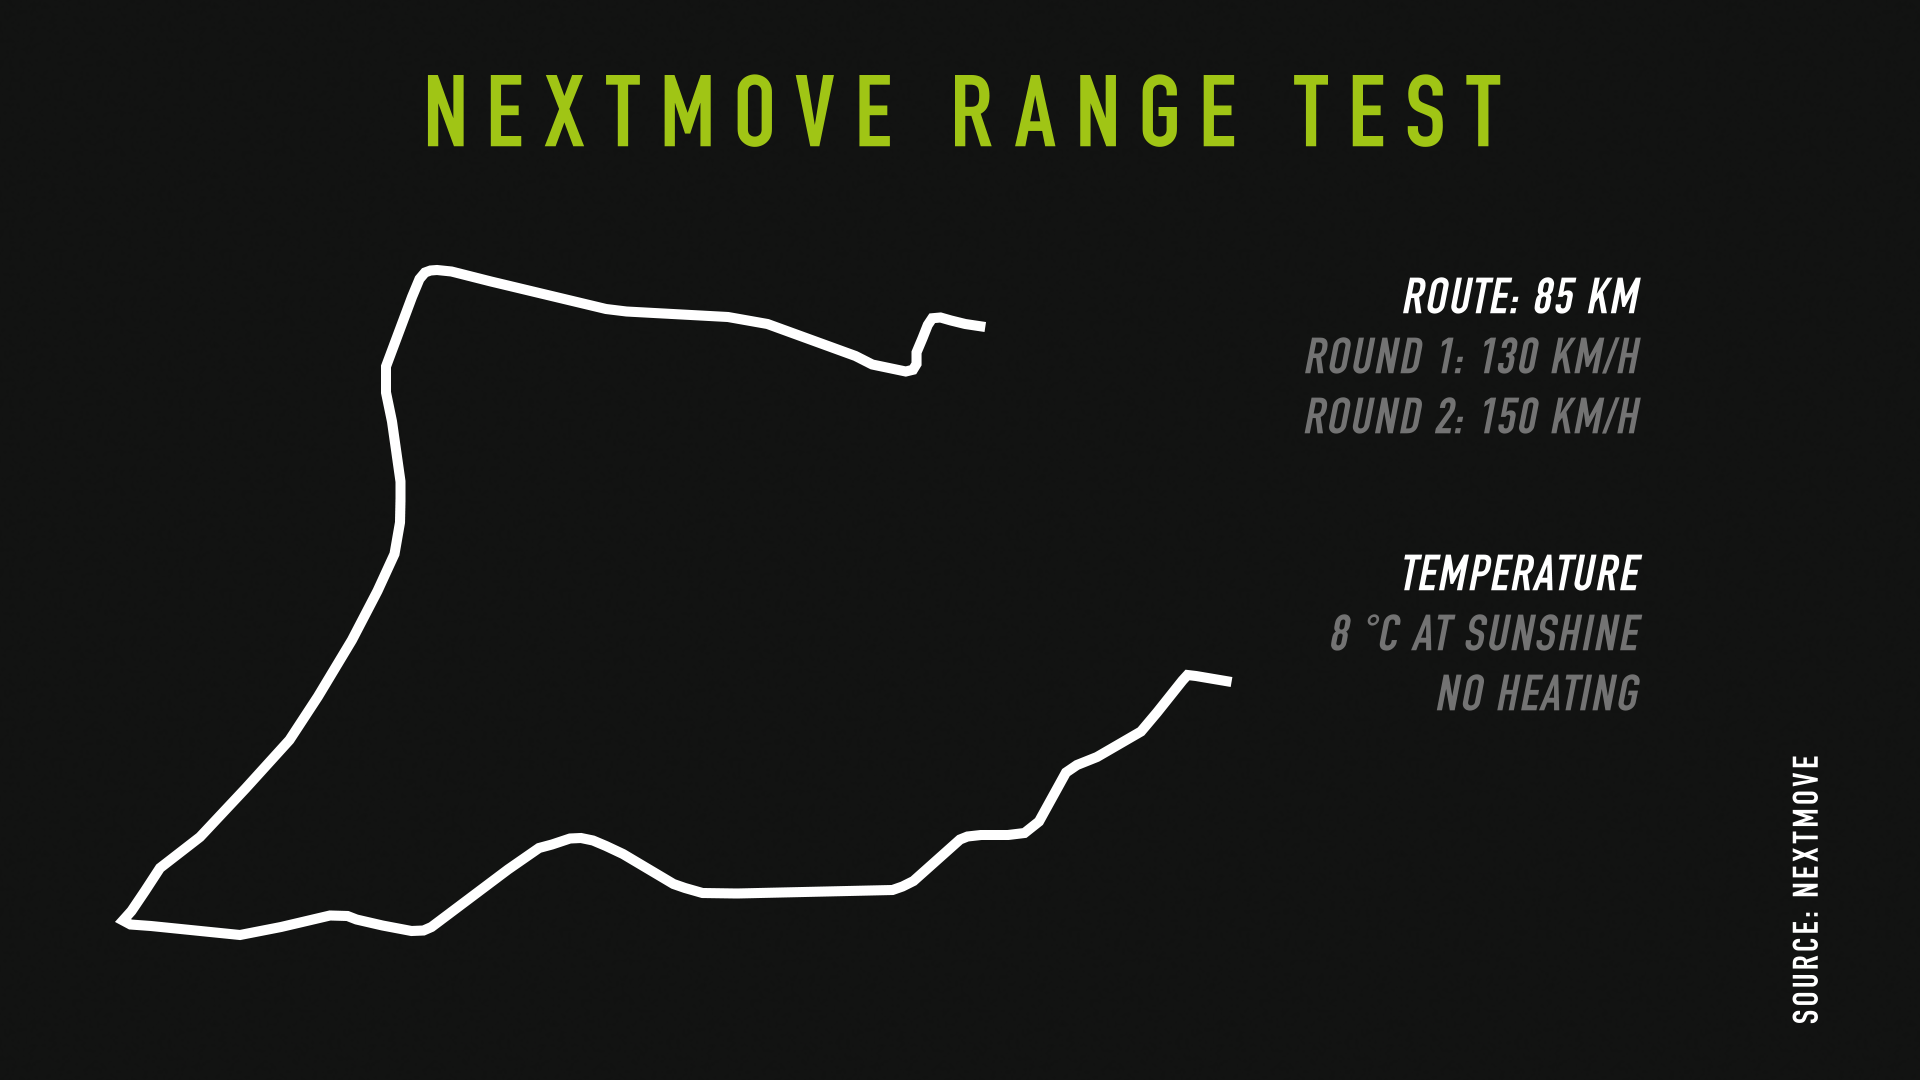 nextmove Autobahn test- overview on testing conditions